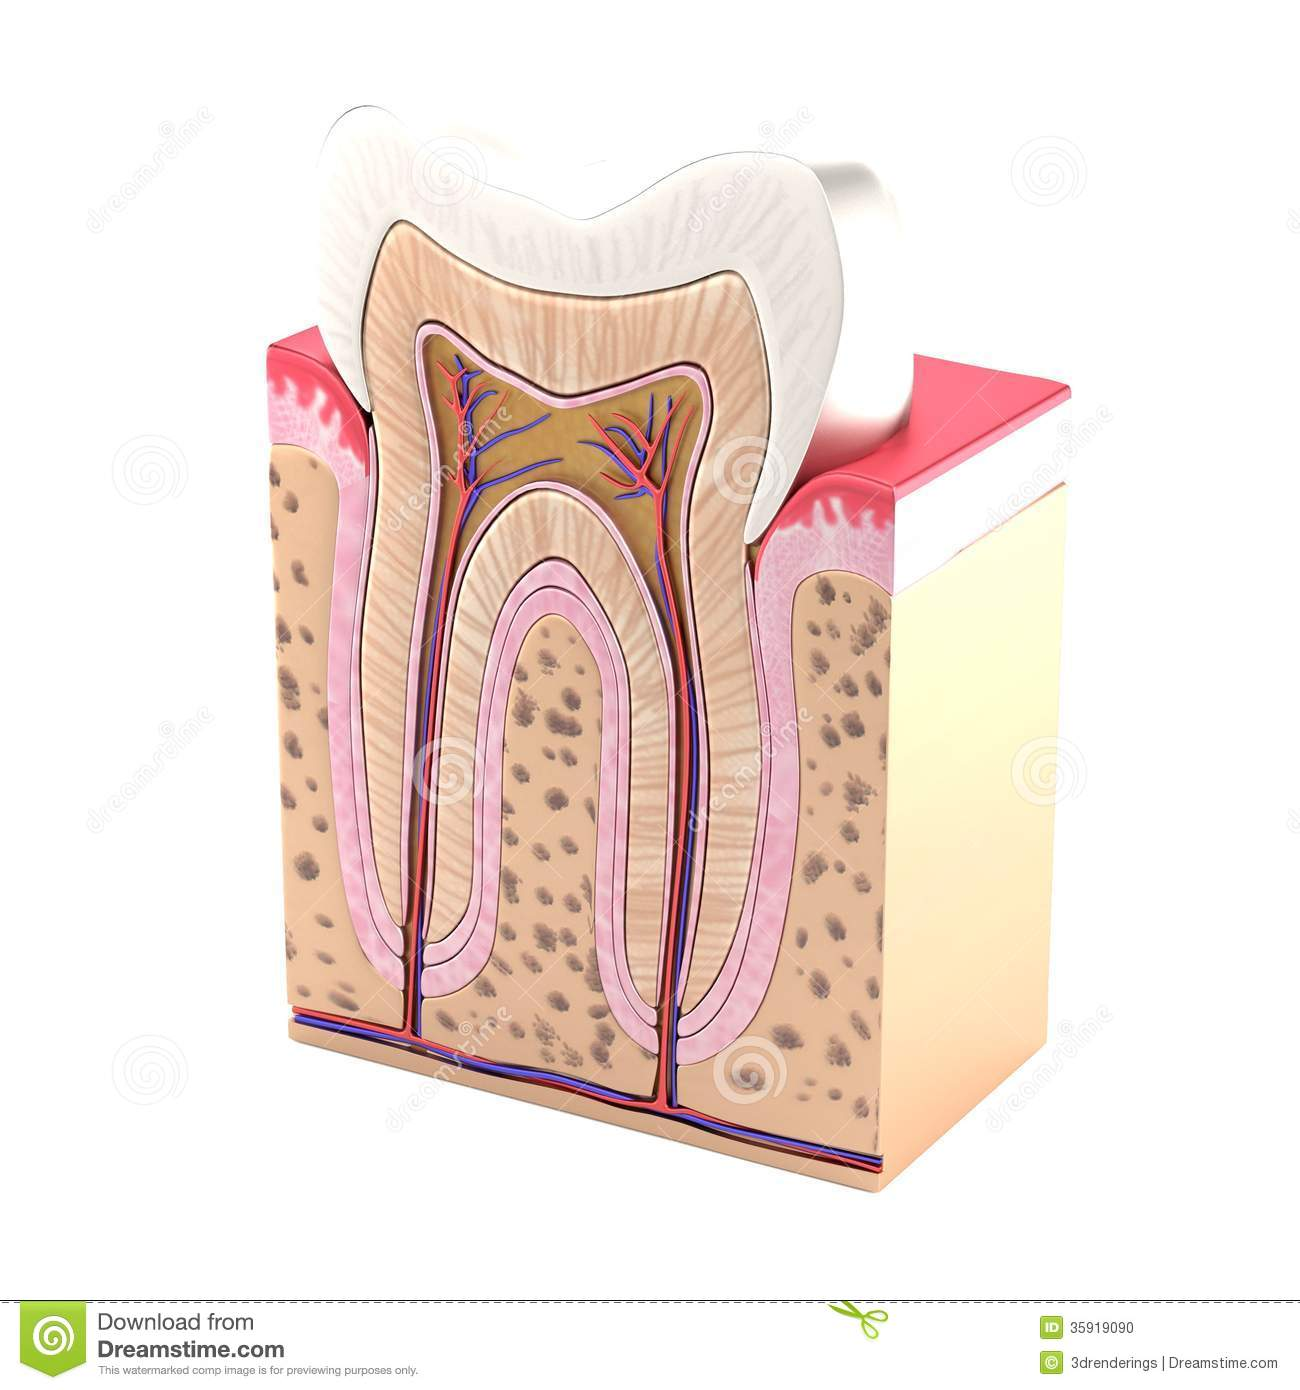 Render of tooth anatomy stock illustration. Illustration of tooth ...